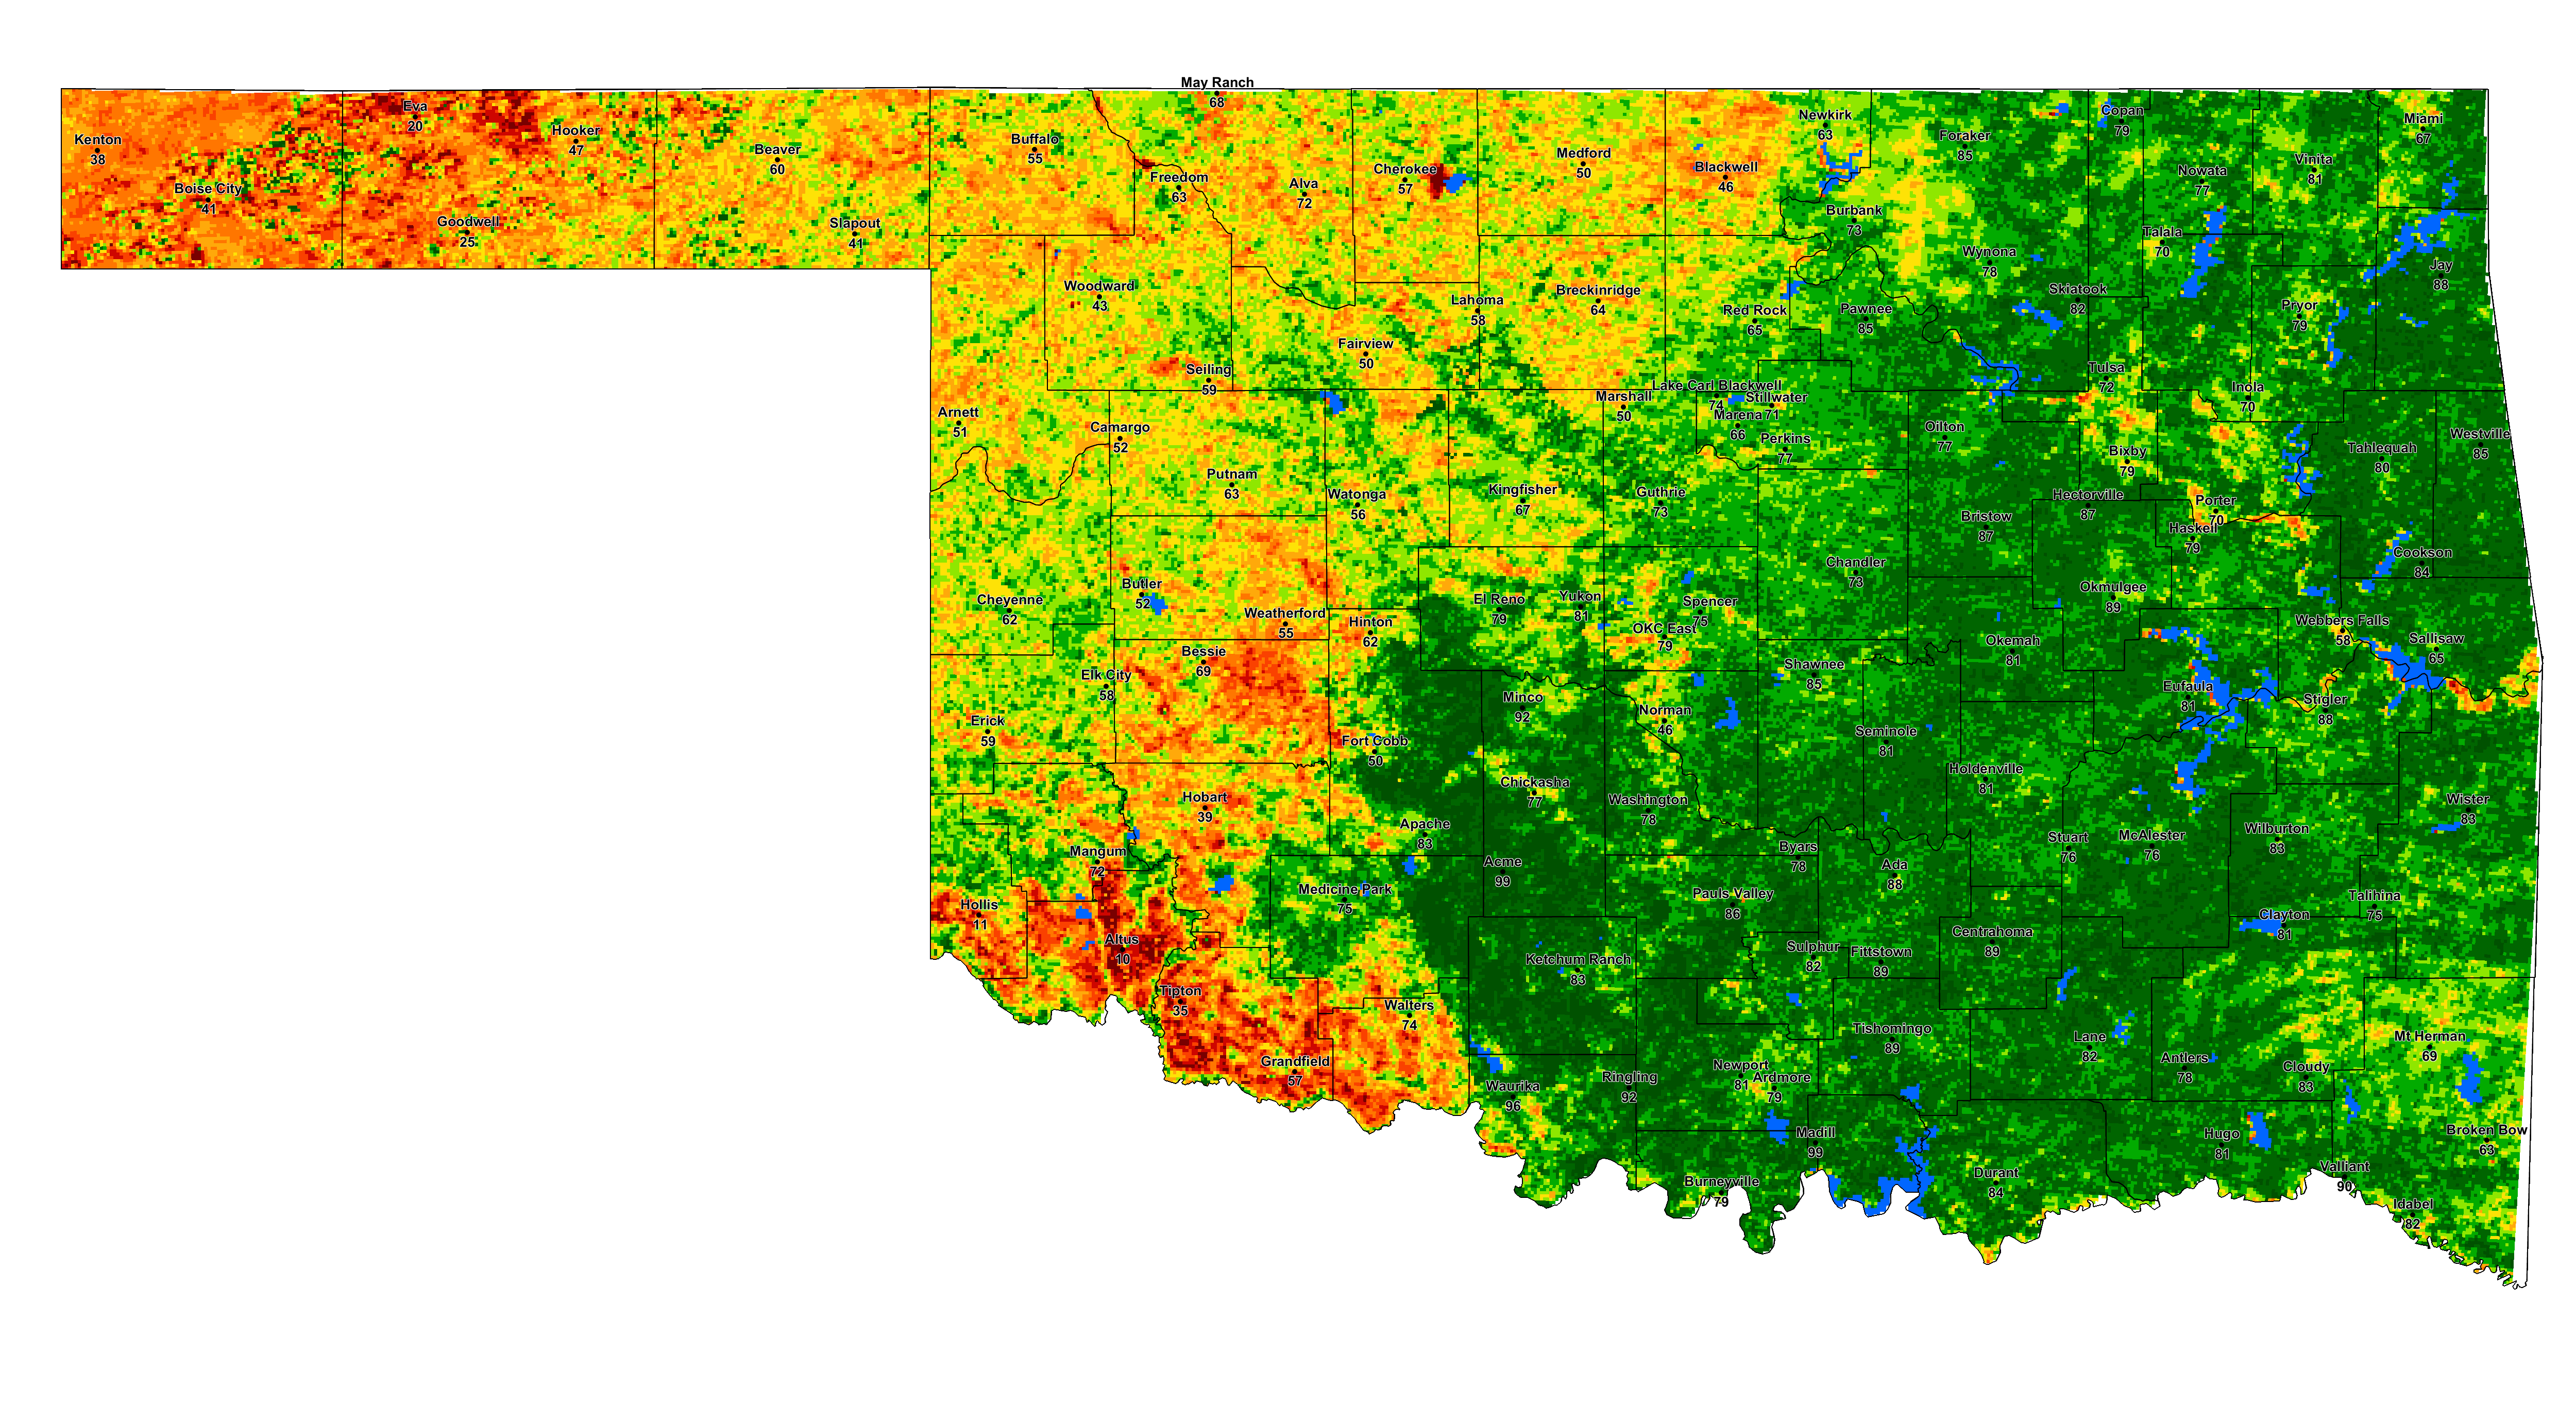 Relative Greenness Map Zoom